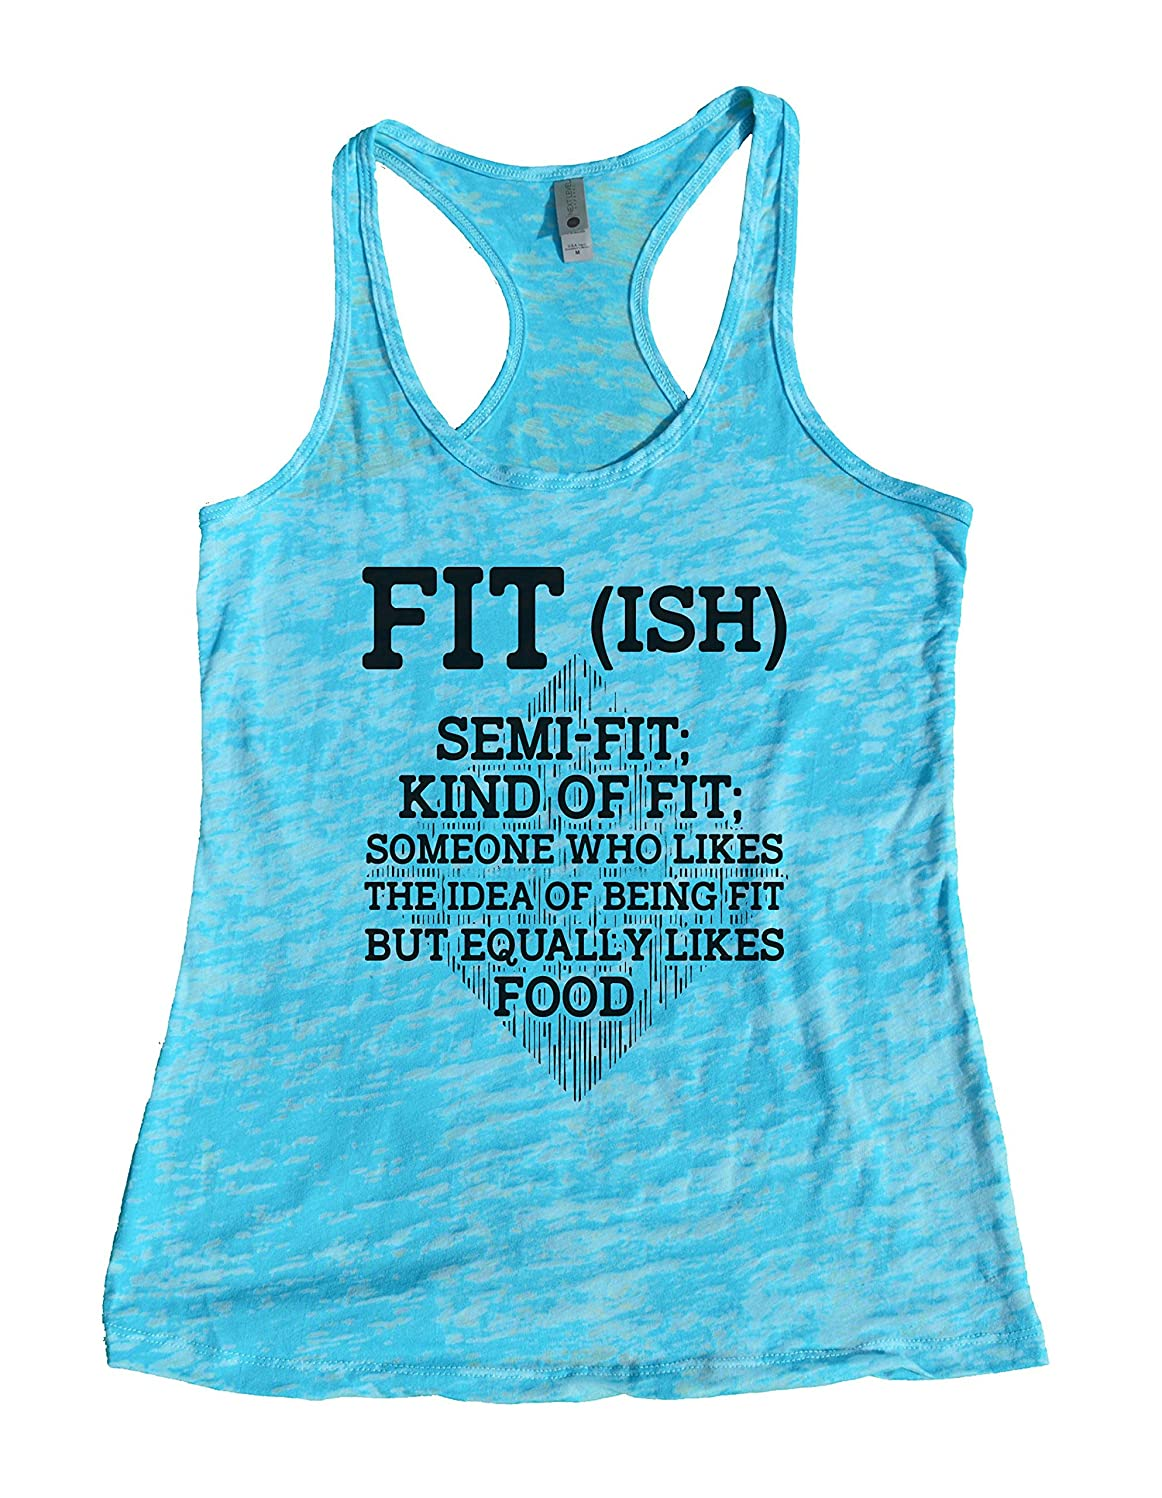 Funny Saying Womens Workout Tanks Fit-ish Definition Royaltee Gym Shirts